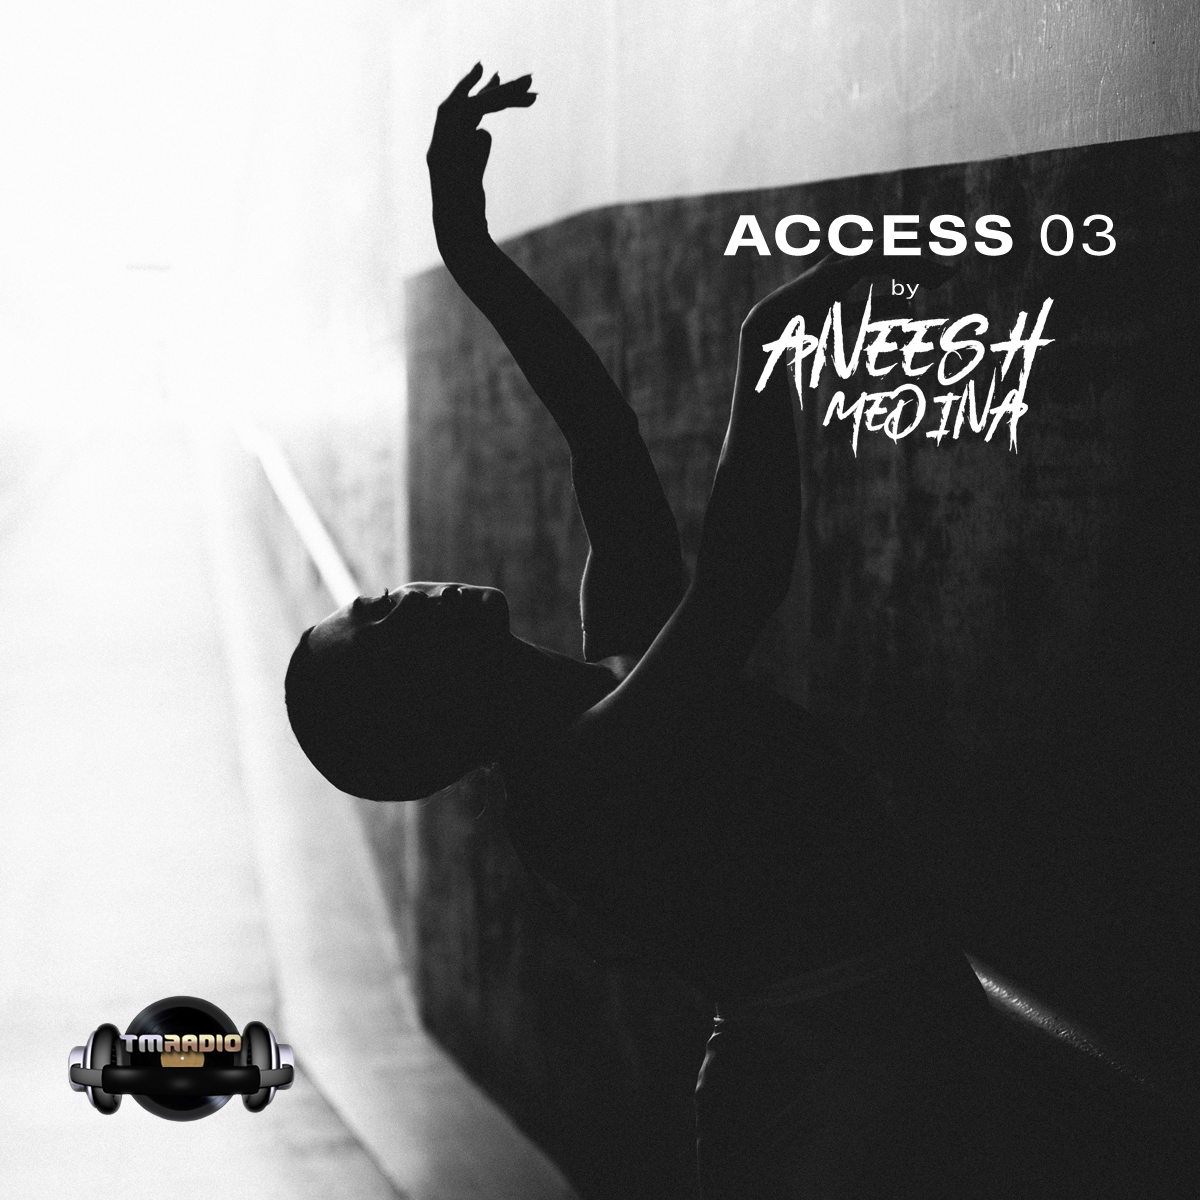 Access :: Episode aired on April 28, 2020, 9pm banner logo